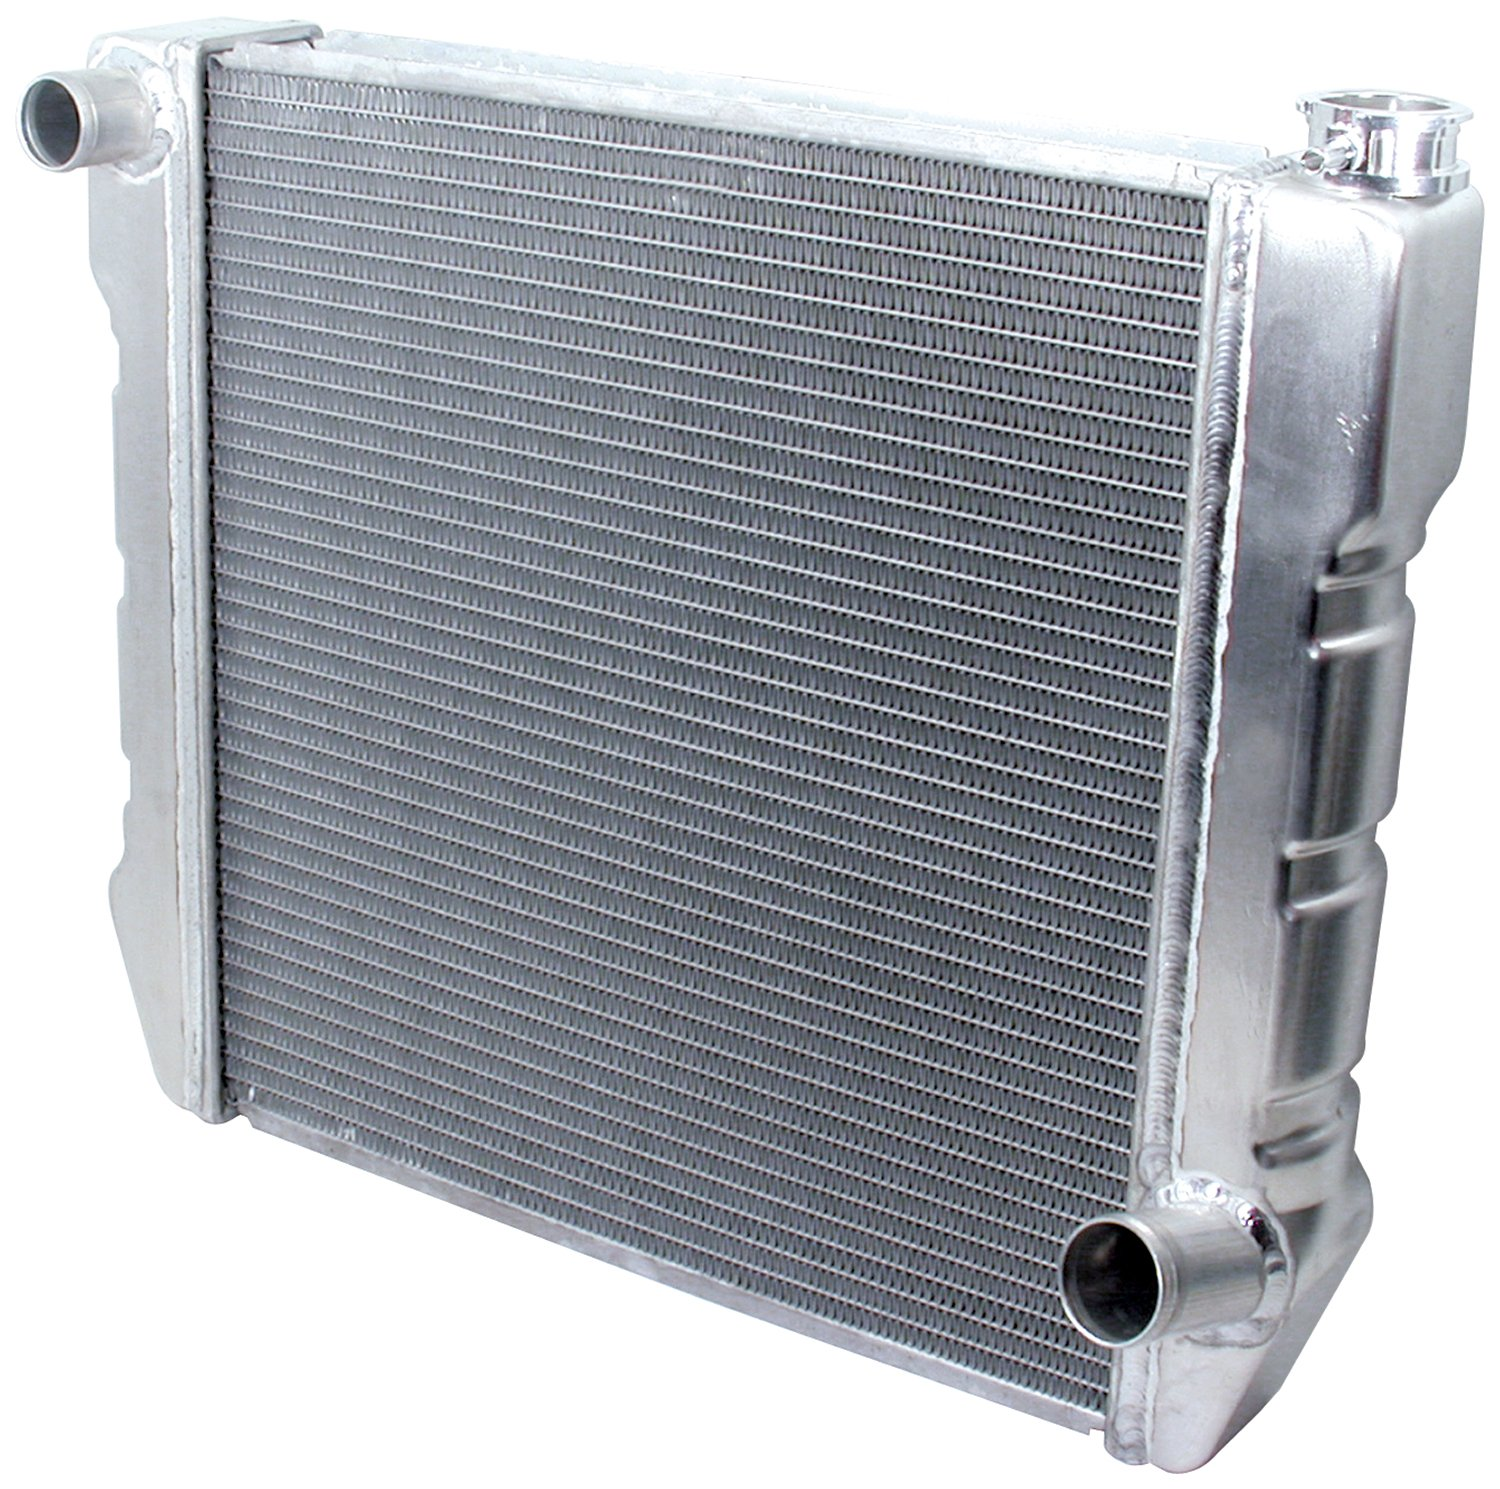 Allstar Performance ALL30014 19'' x 28'' Aluminum Radiator for Chevy by Allstar